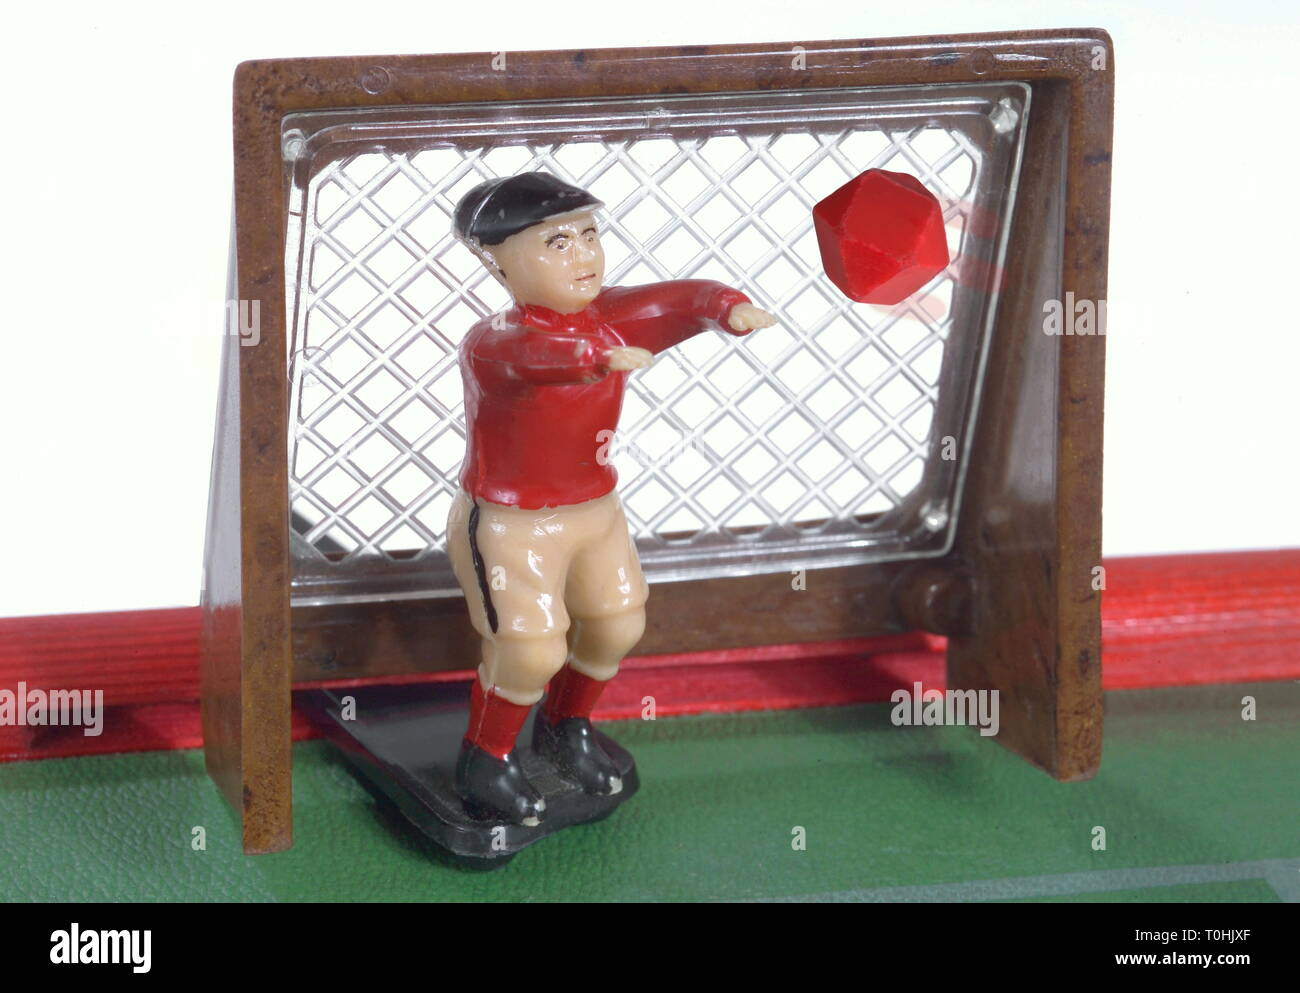 toys, goal with keeper, made by VEB Plastik-Werk Berlin, East-Germany, 1960, Additional-Rights-Clearance-Info-Not-Available - Stock Image